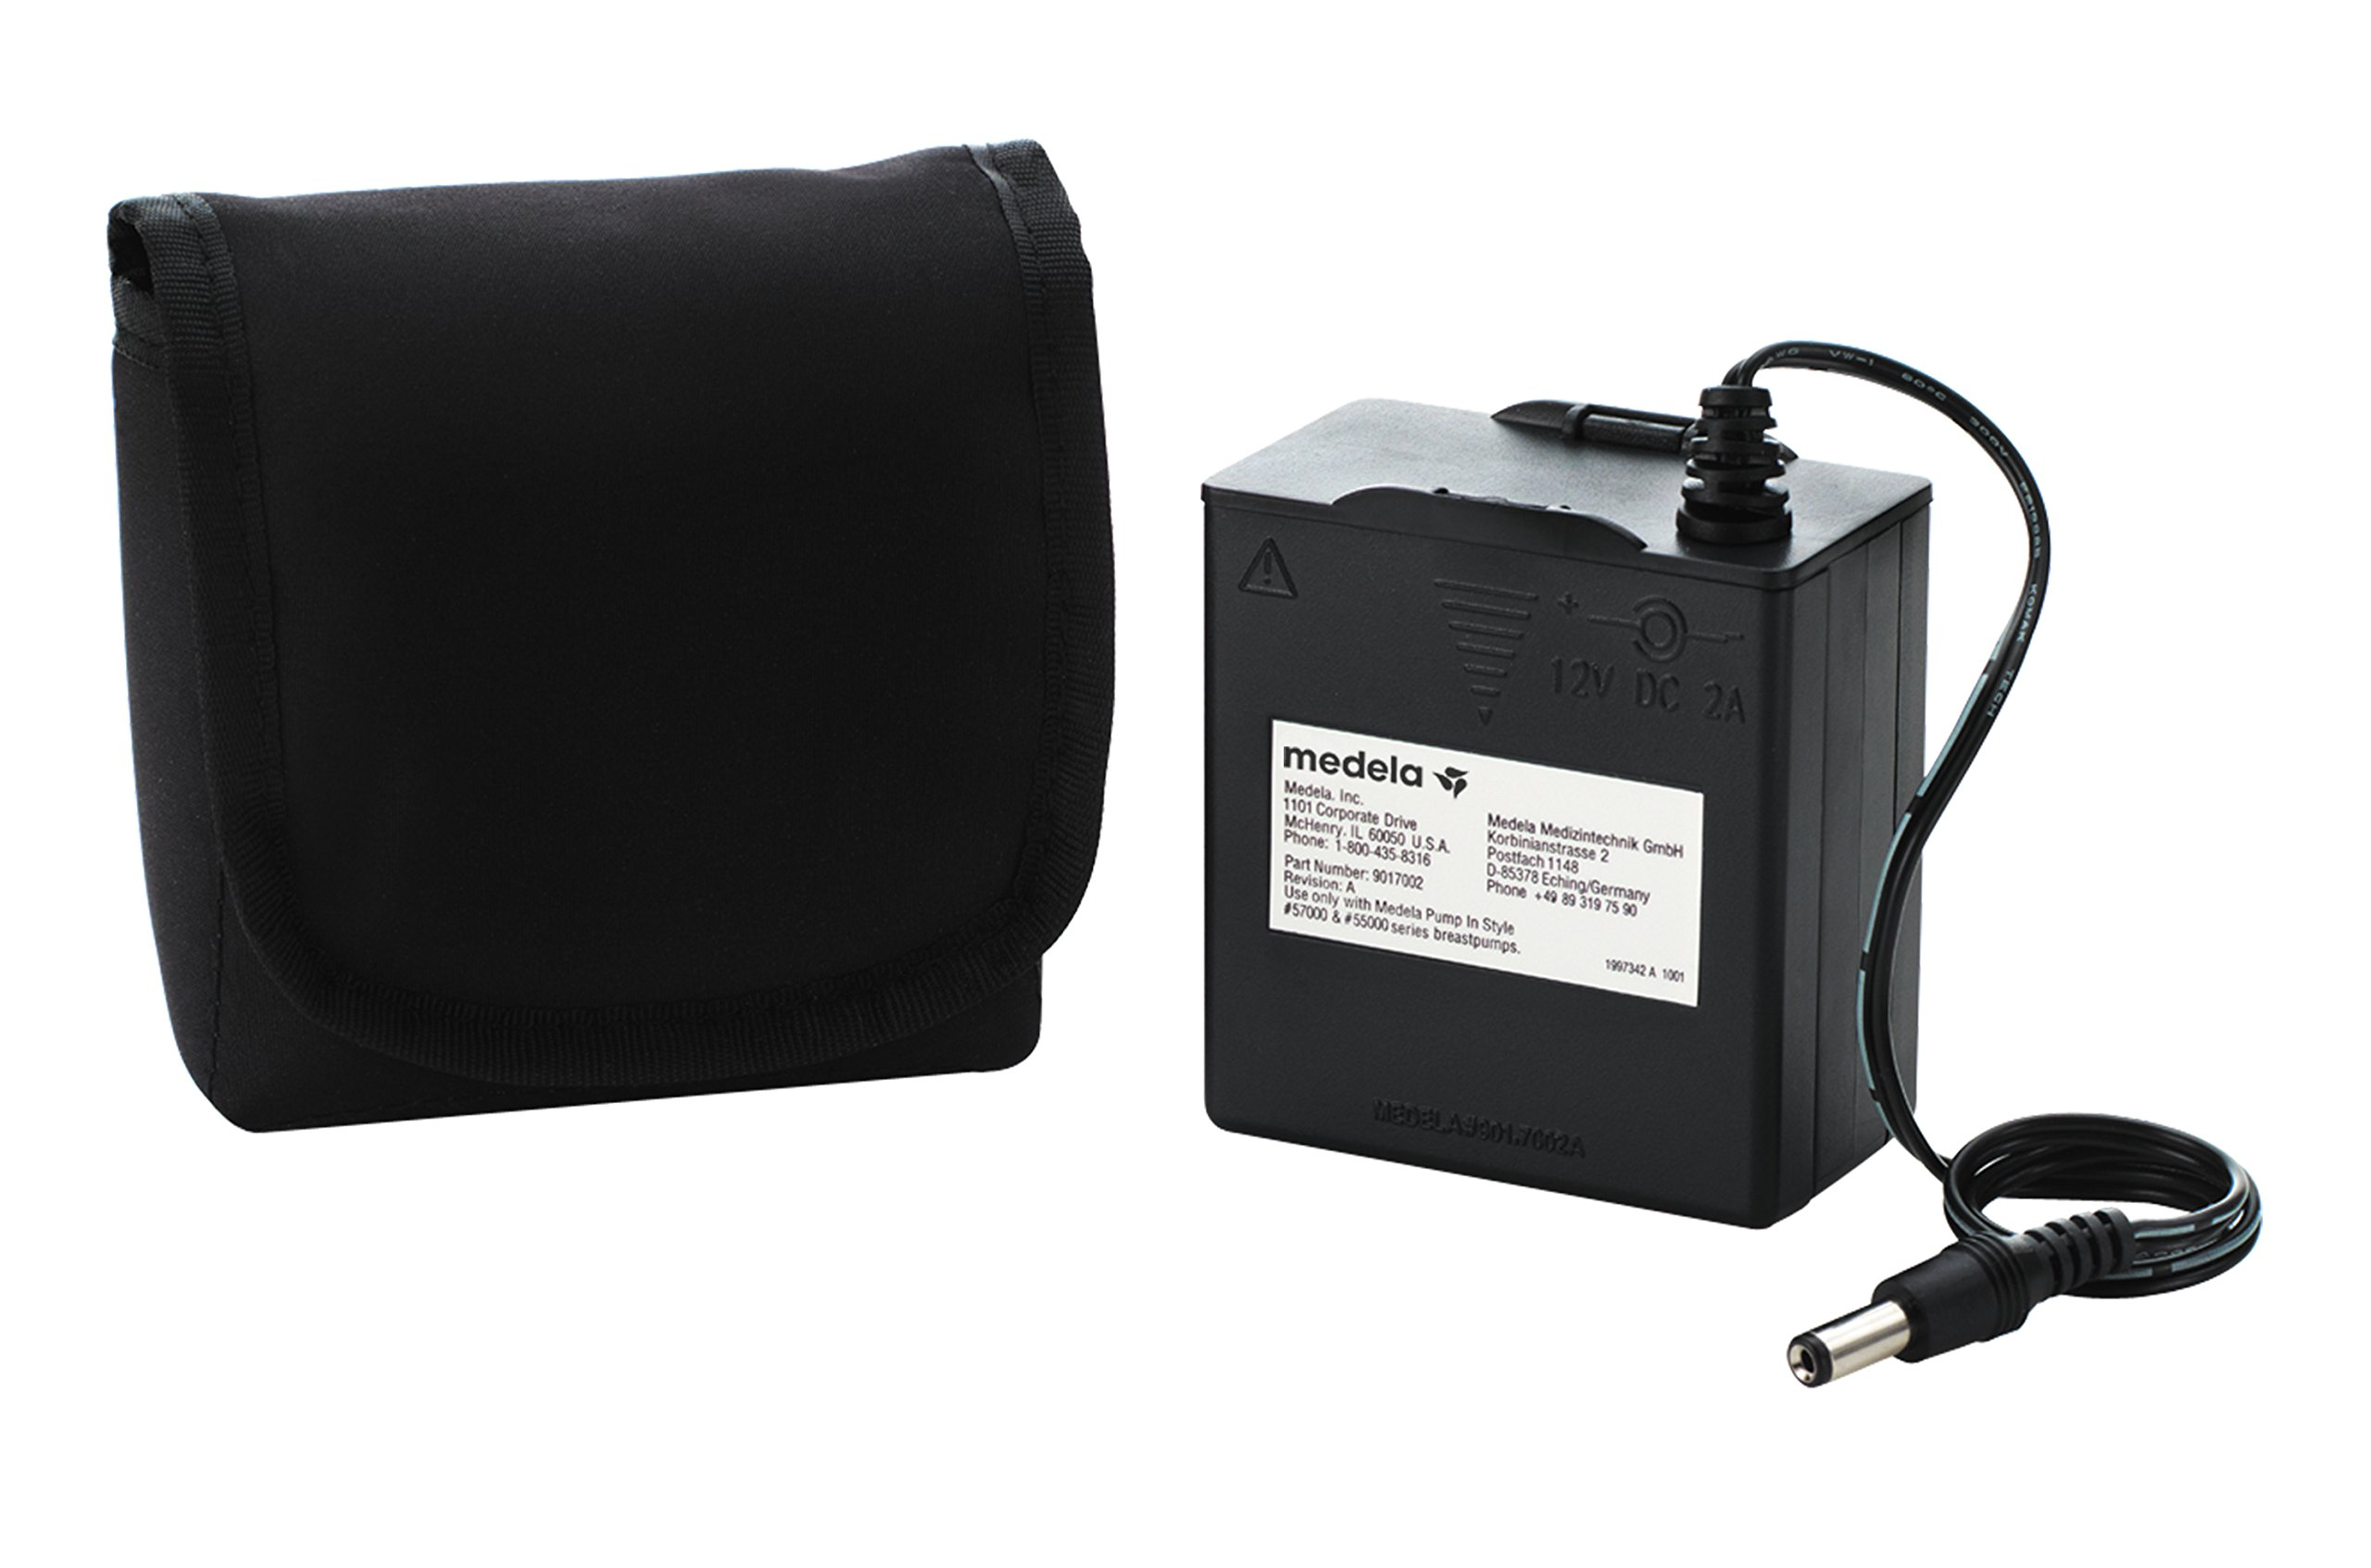 Medela Pump in Style Battery Pack, Portable Unit for 9 Volt Pump in Style Advanced Breast Pump Uses AA Batteries, Authentic Medela Spare Parts